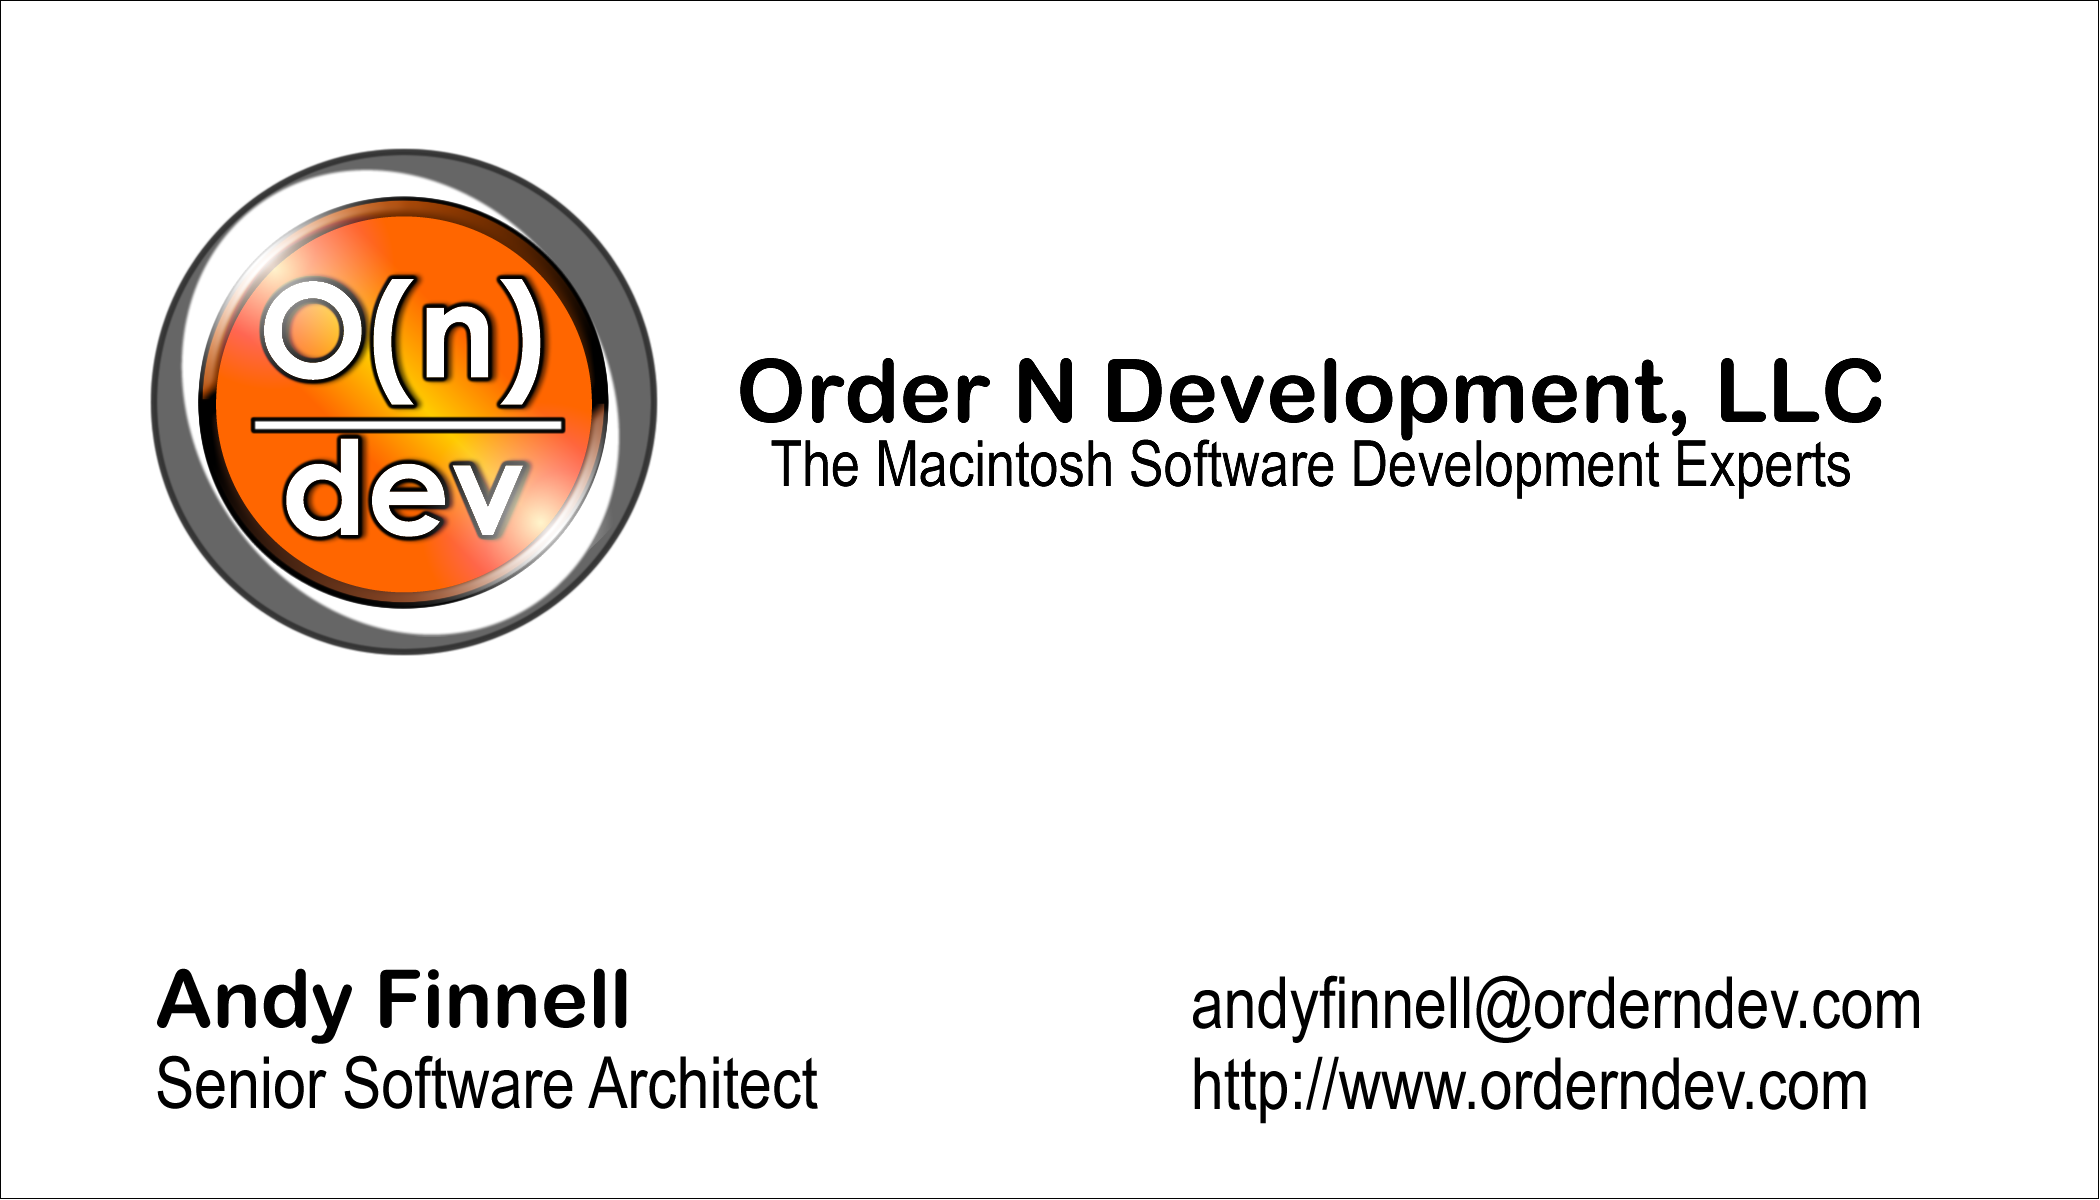 Logo designs business cards and when engineers go bad safe business card style b colourmoves